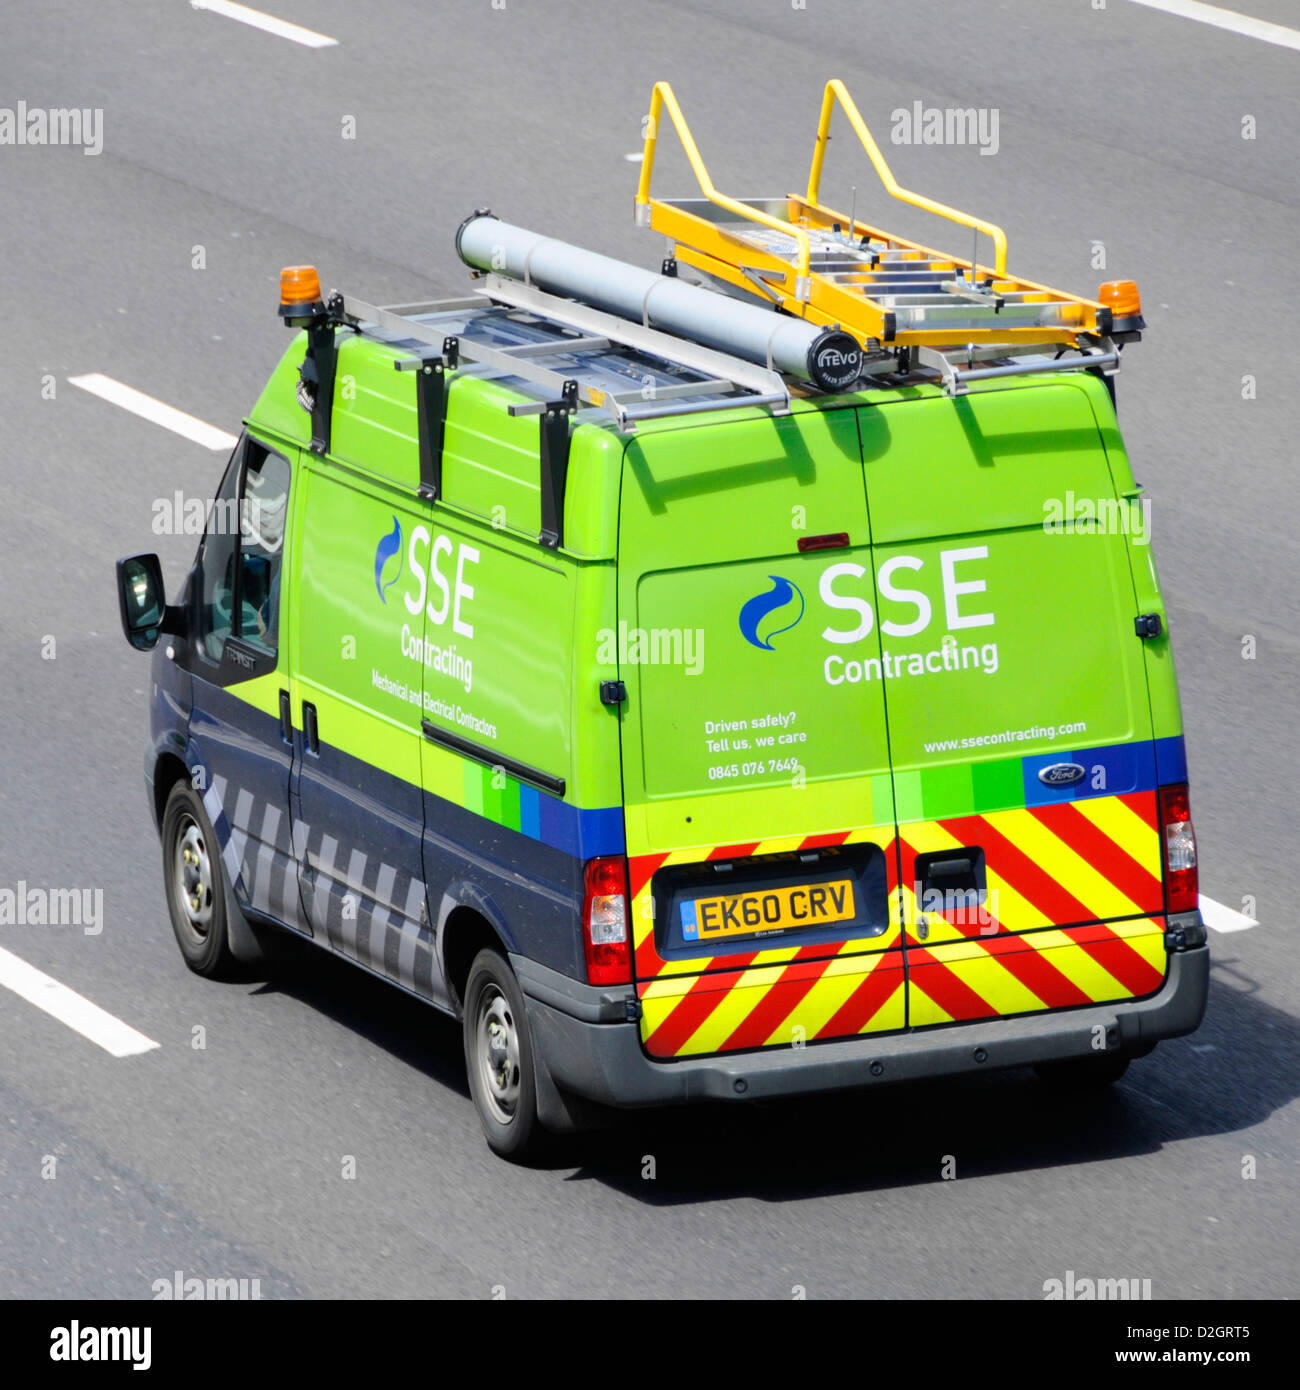 Scottish and Southern Energy plc contracting van on M25 motorway Essex England UK - Stock Image